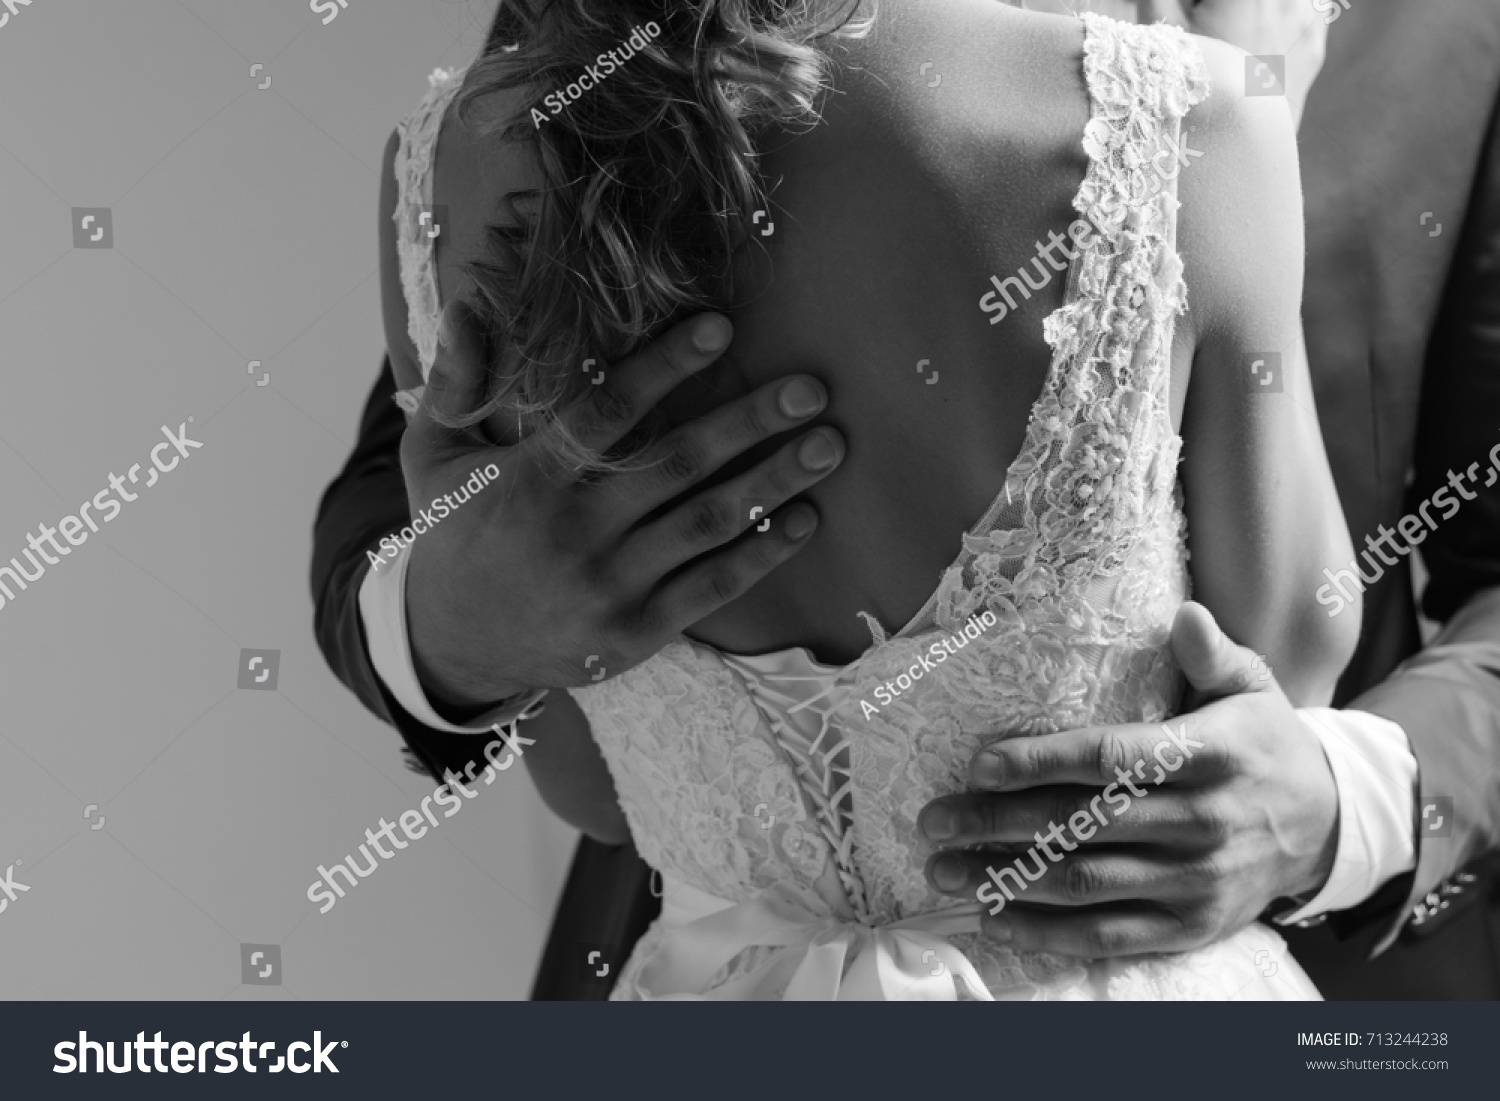 People no face black and white photo of a closeup loving couple on a wedding